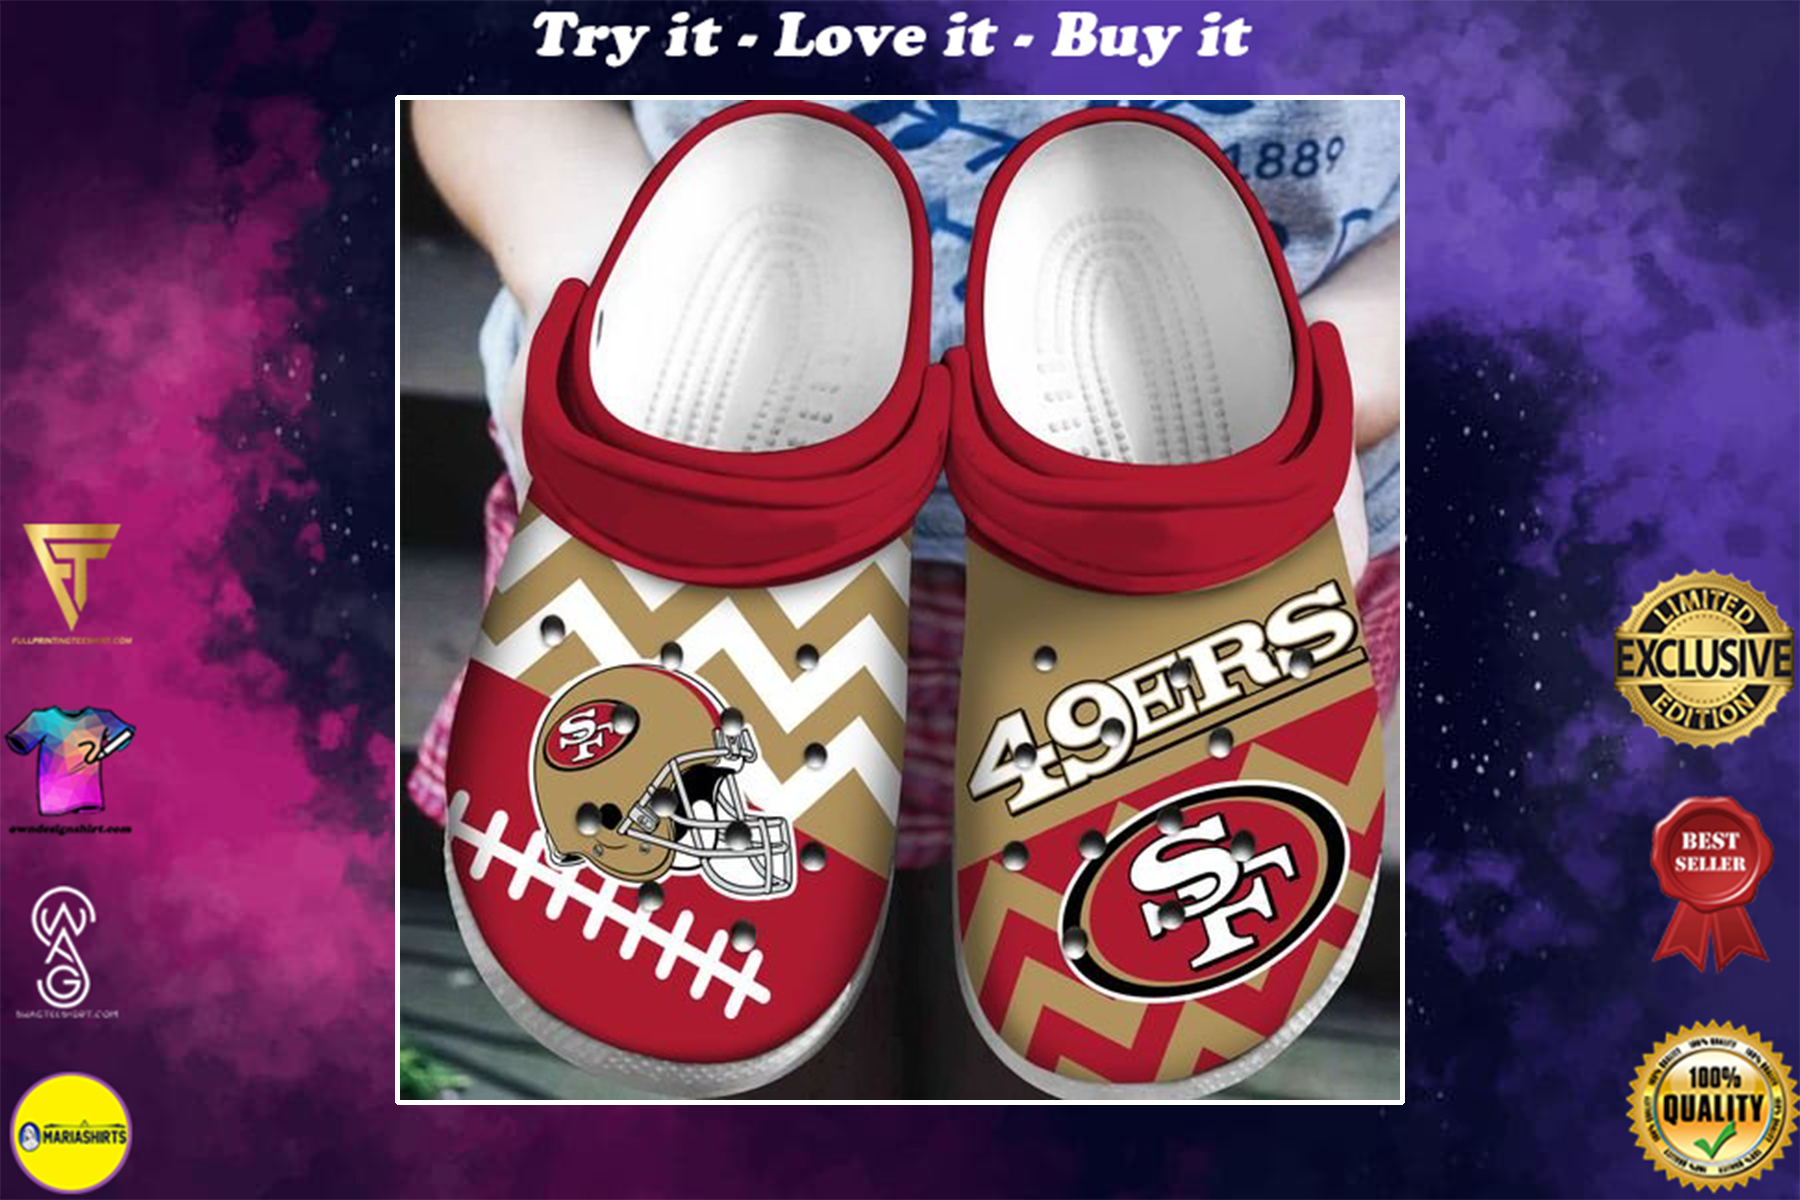 national football league san francisco 49ers helmet crocband clog - Copy